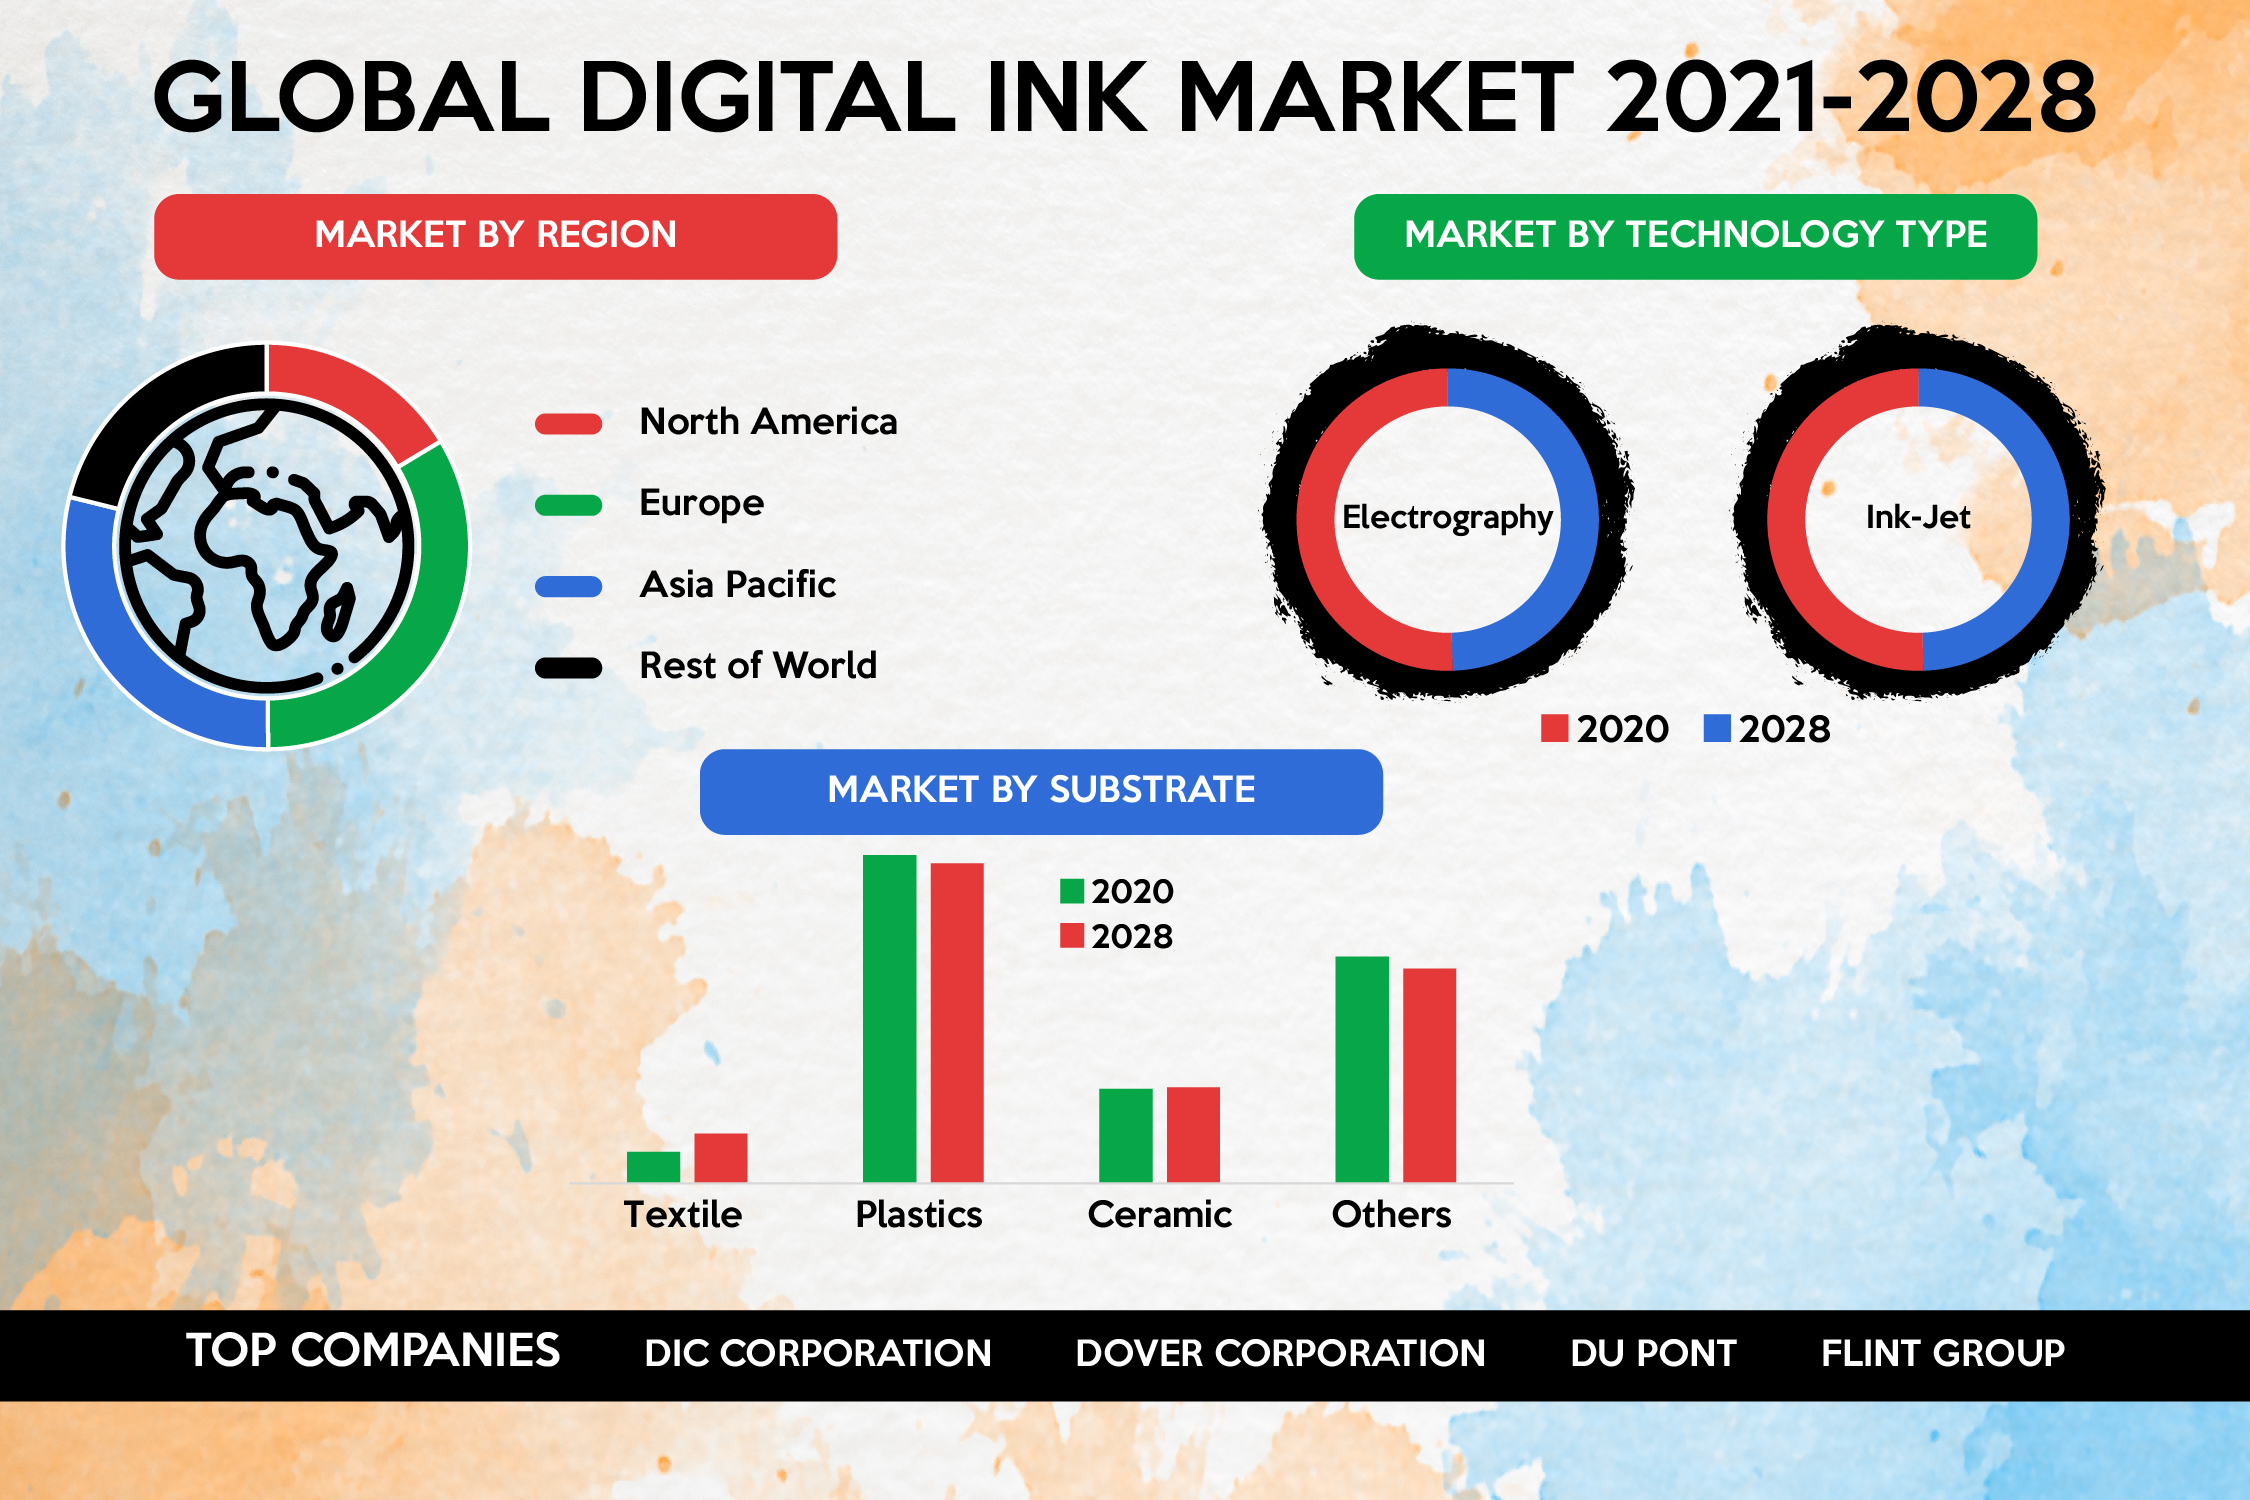 Development in 3D Technique is pushing the Global Digital Ink Market